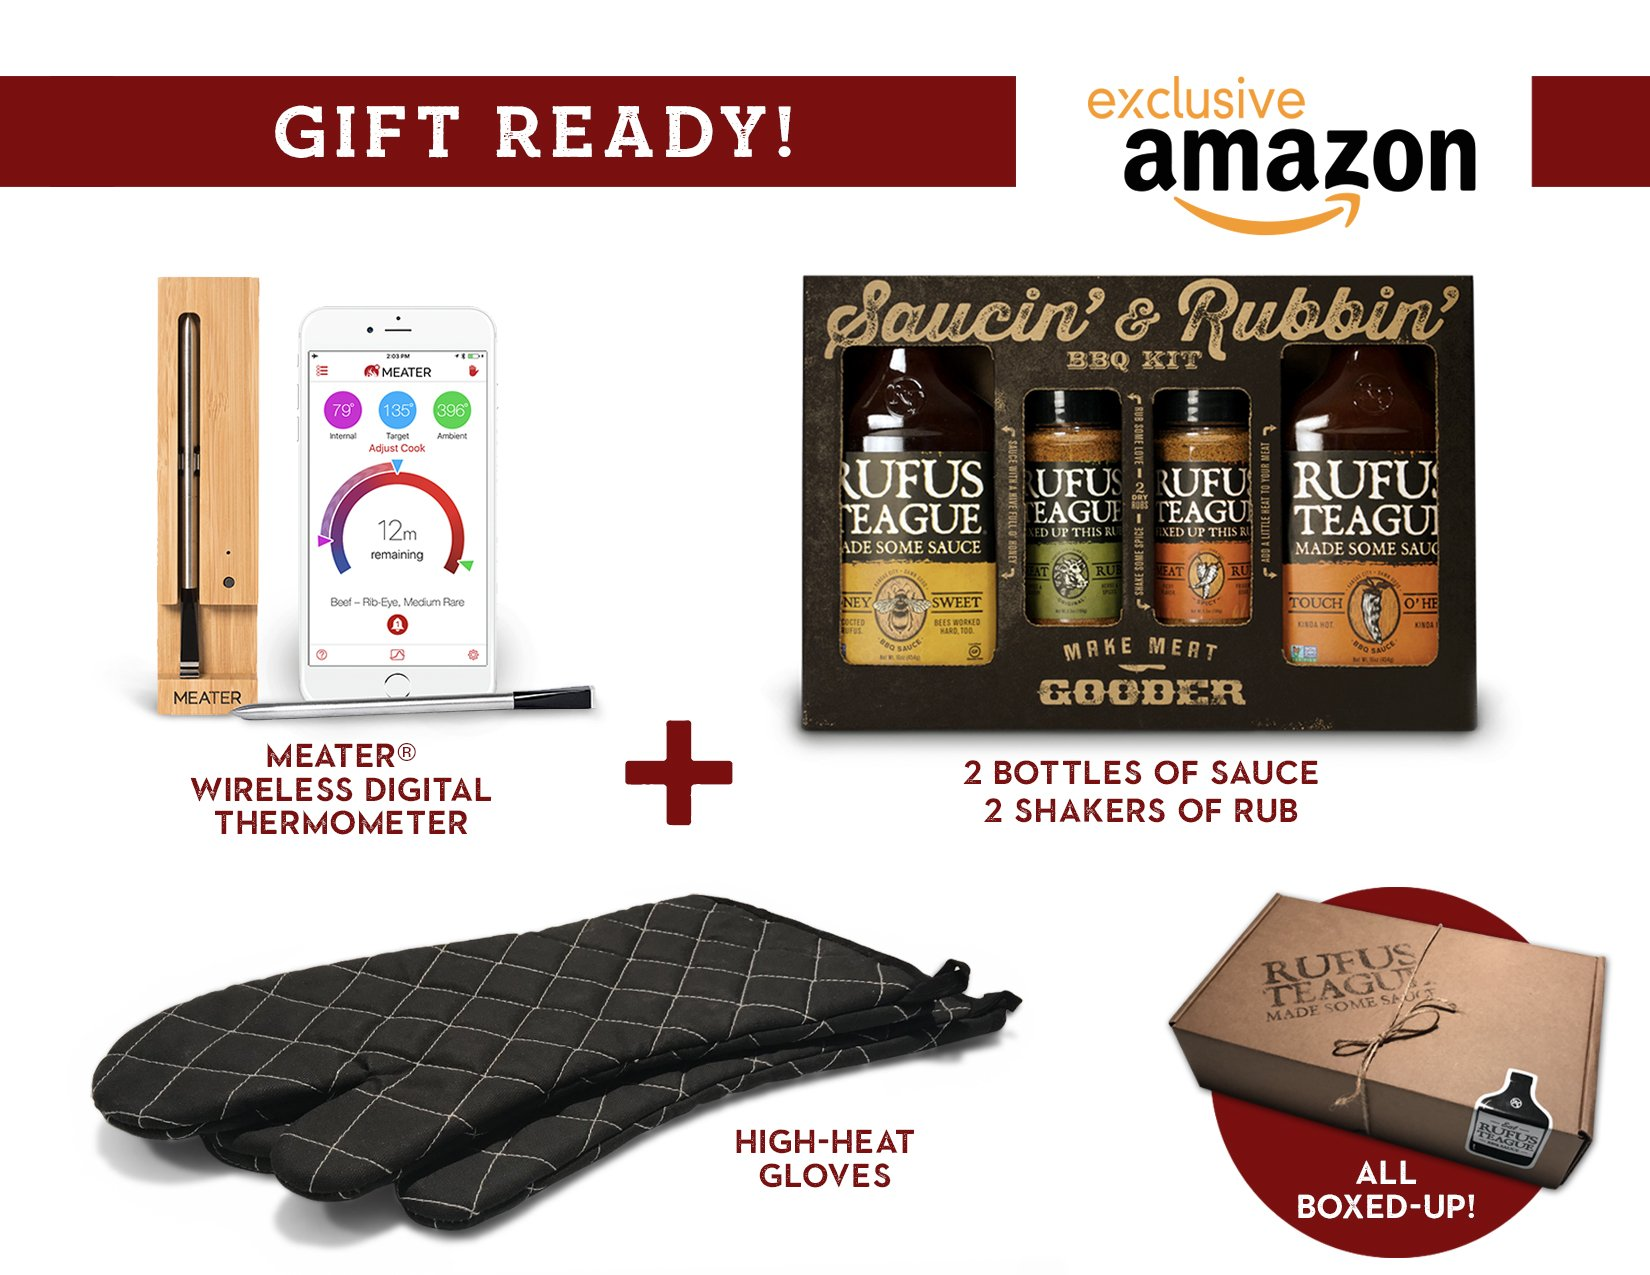 Rufus Teague House Warming Barbecue Gift Set Including One Meater Wireless Thermometer, BBQ Sauce Gift Pack and Extra Long BBQ Gloves. Amazon Exclusive-Limited Availability.